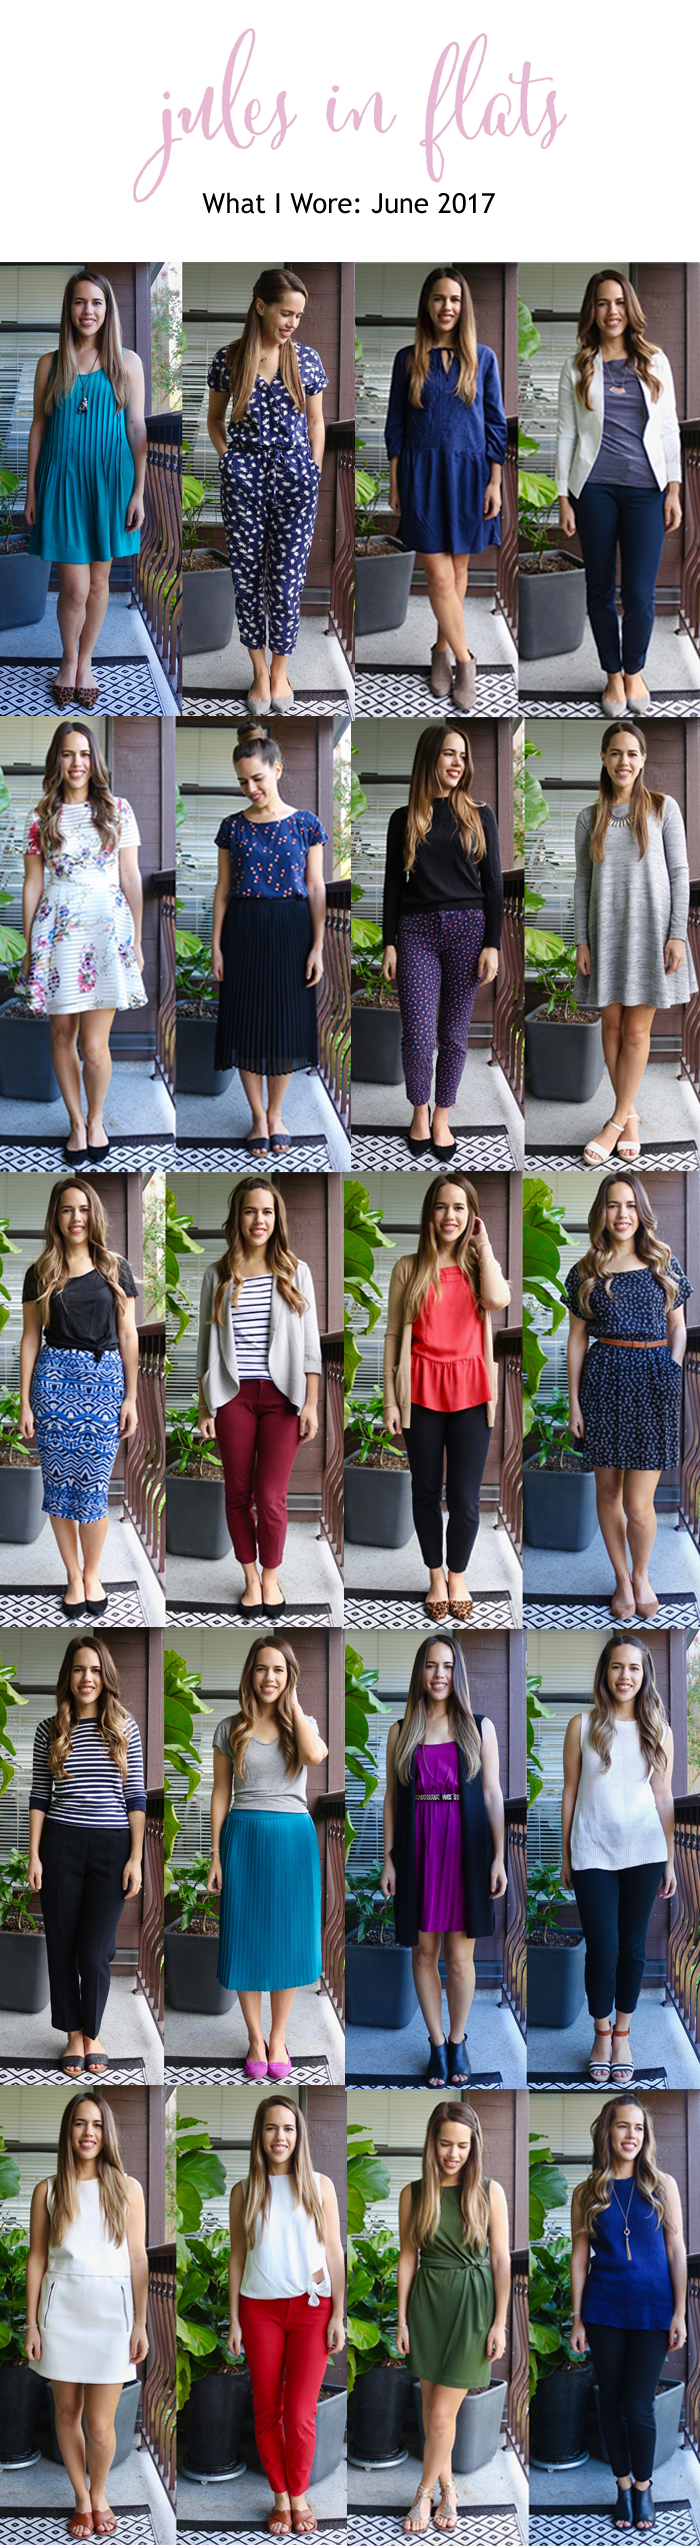 Jules in Flats - Monthly Outfit Roundup June 2017